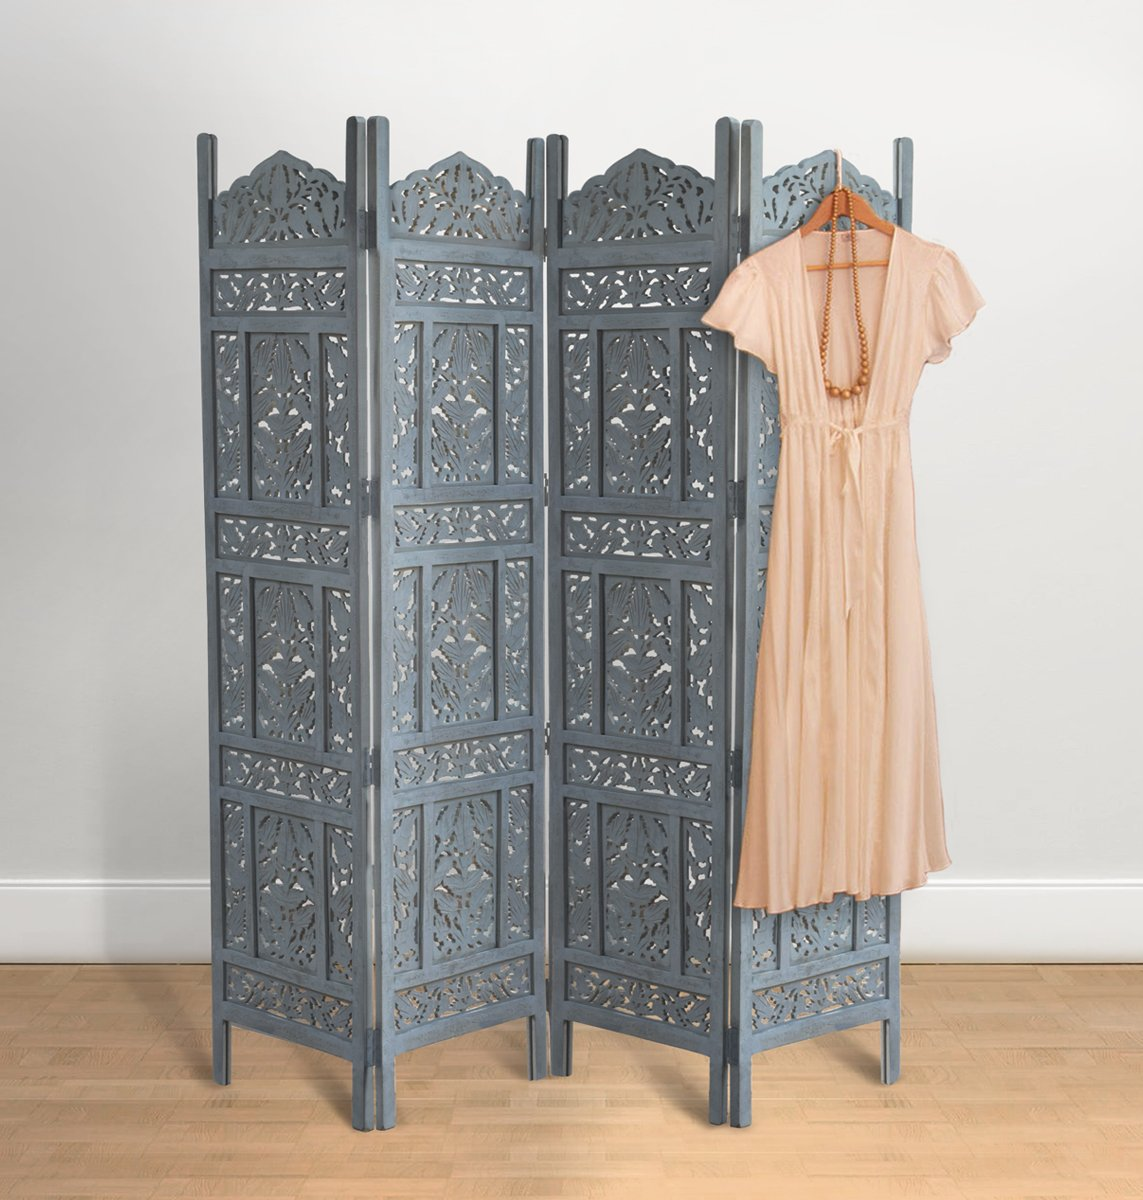 Hand Carved Gray Wooden Screen Room Divider 4 Panel 72 X 80'' Fully Reversible Highly Versatile Hides Clutter Durable Folding Partition for Bedroom Living Room Home Decor